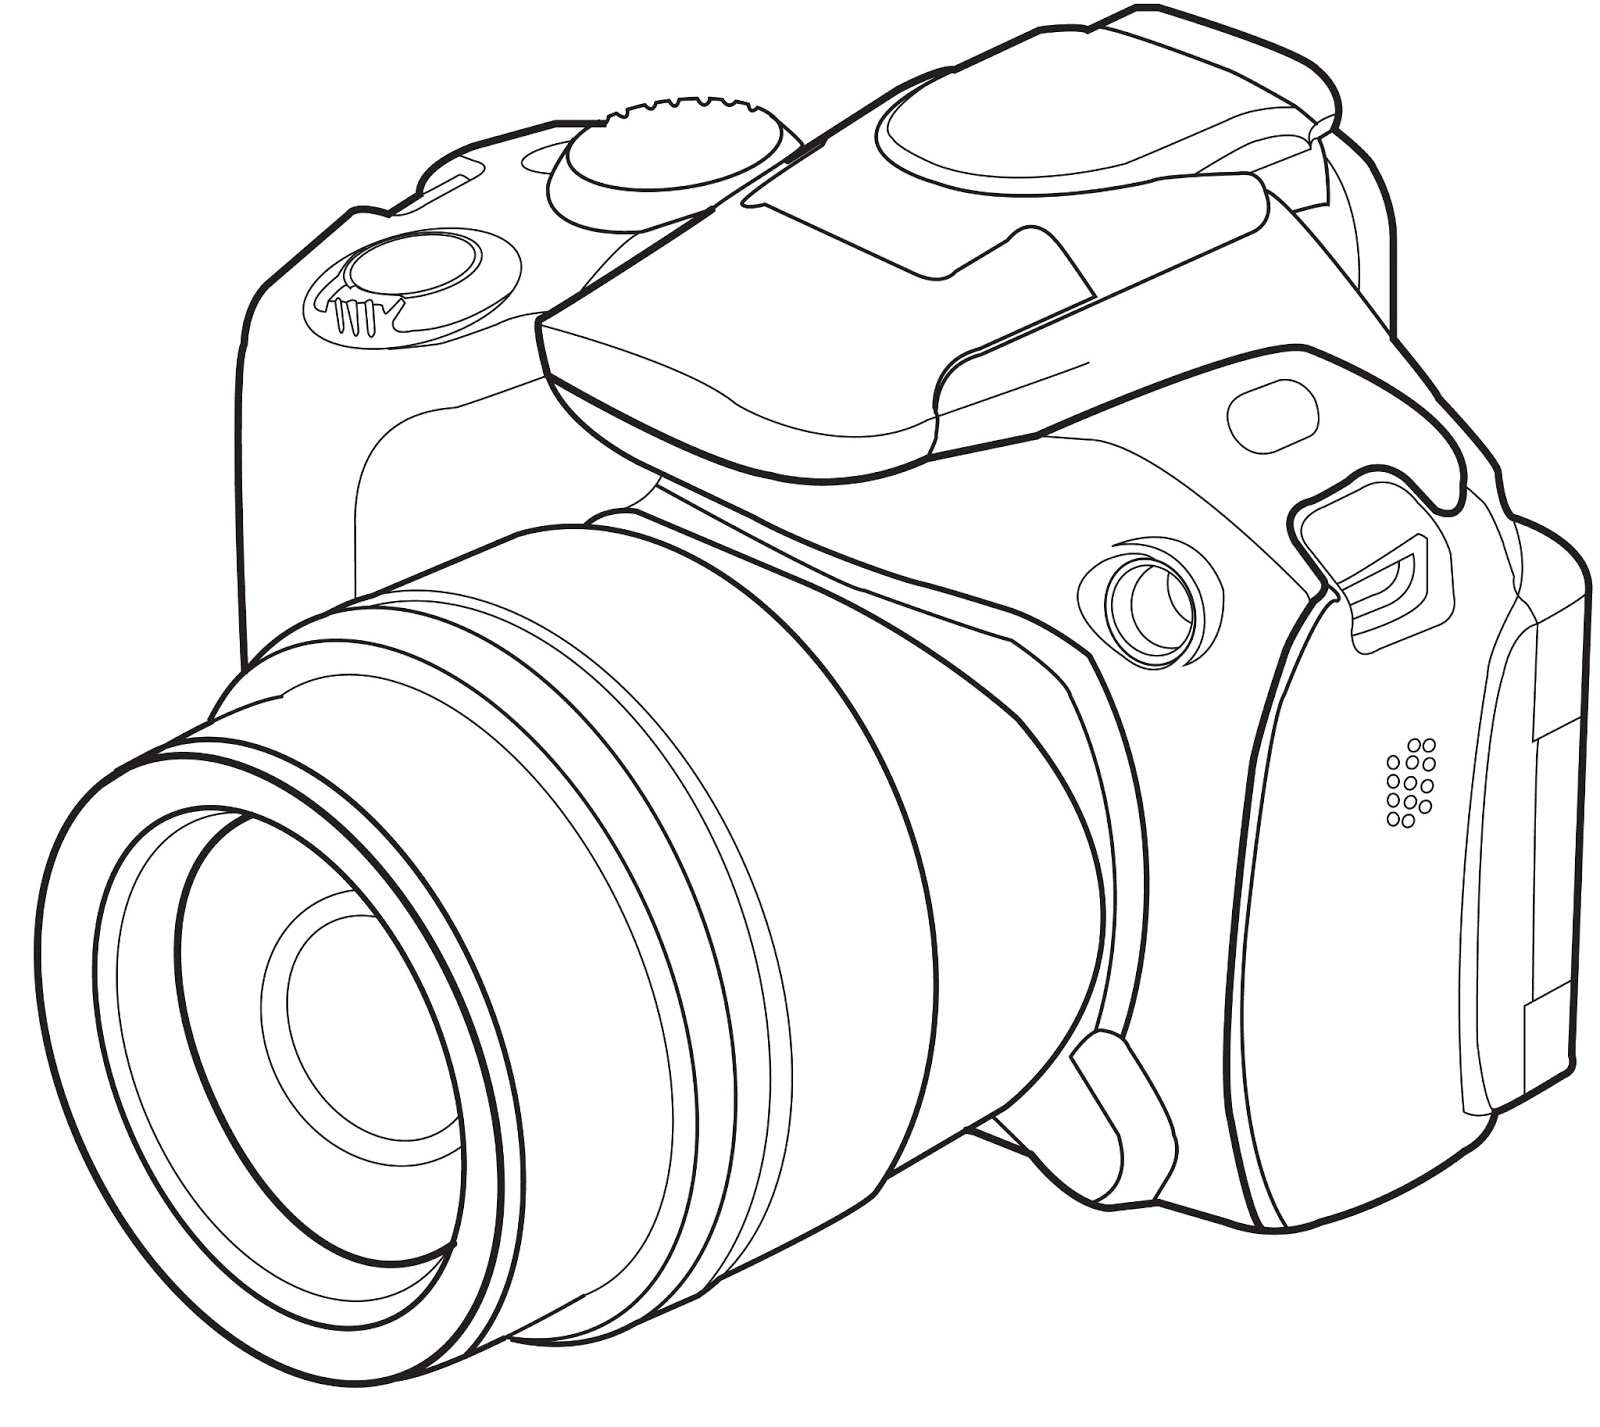 1600x1427 Image Result For Camera Lsr Line Drawing Nikon Dslr Pinterest